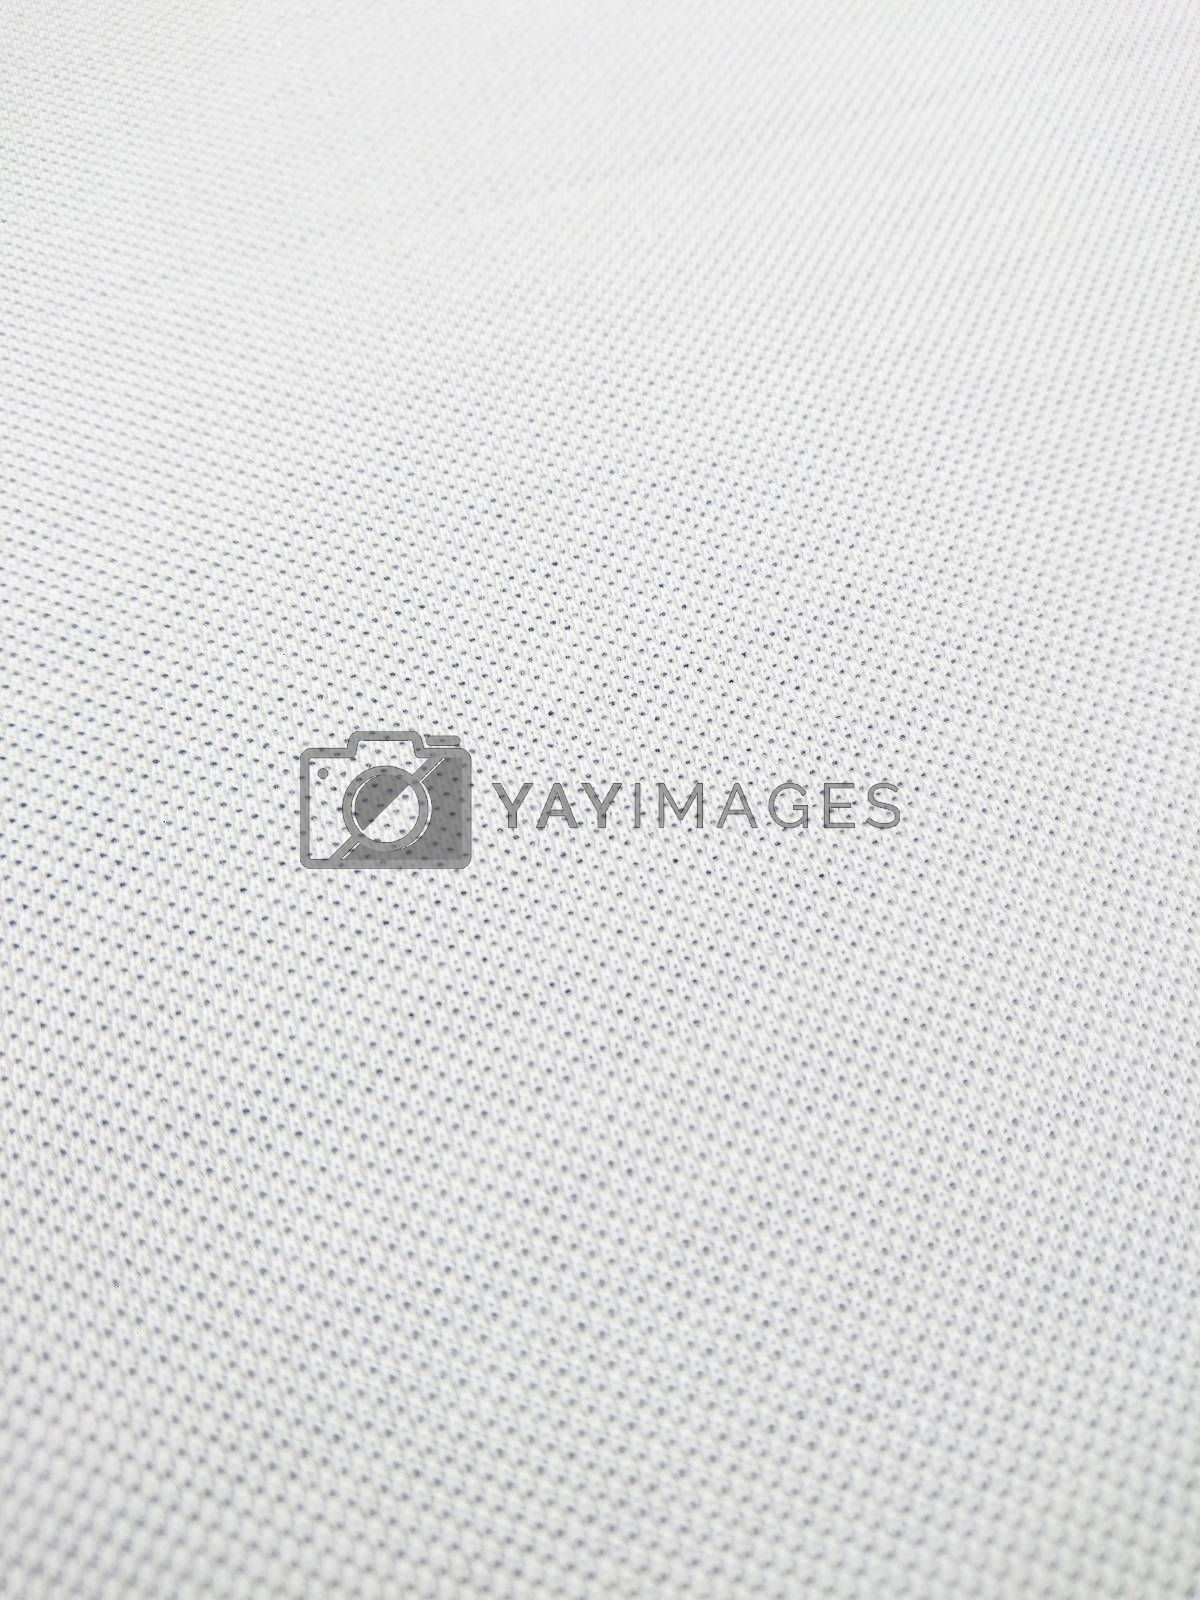 background of white fabric texture